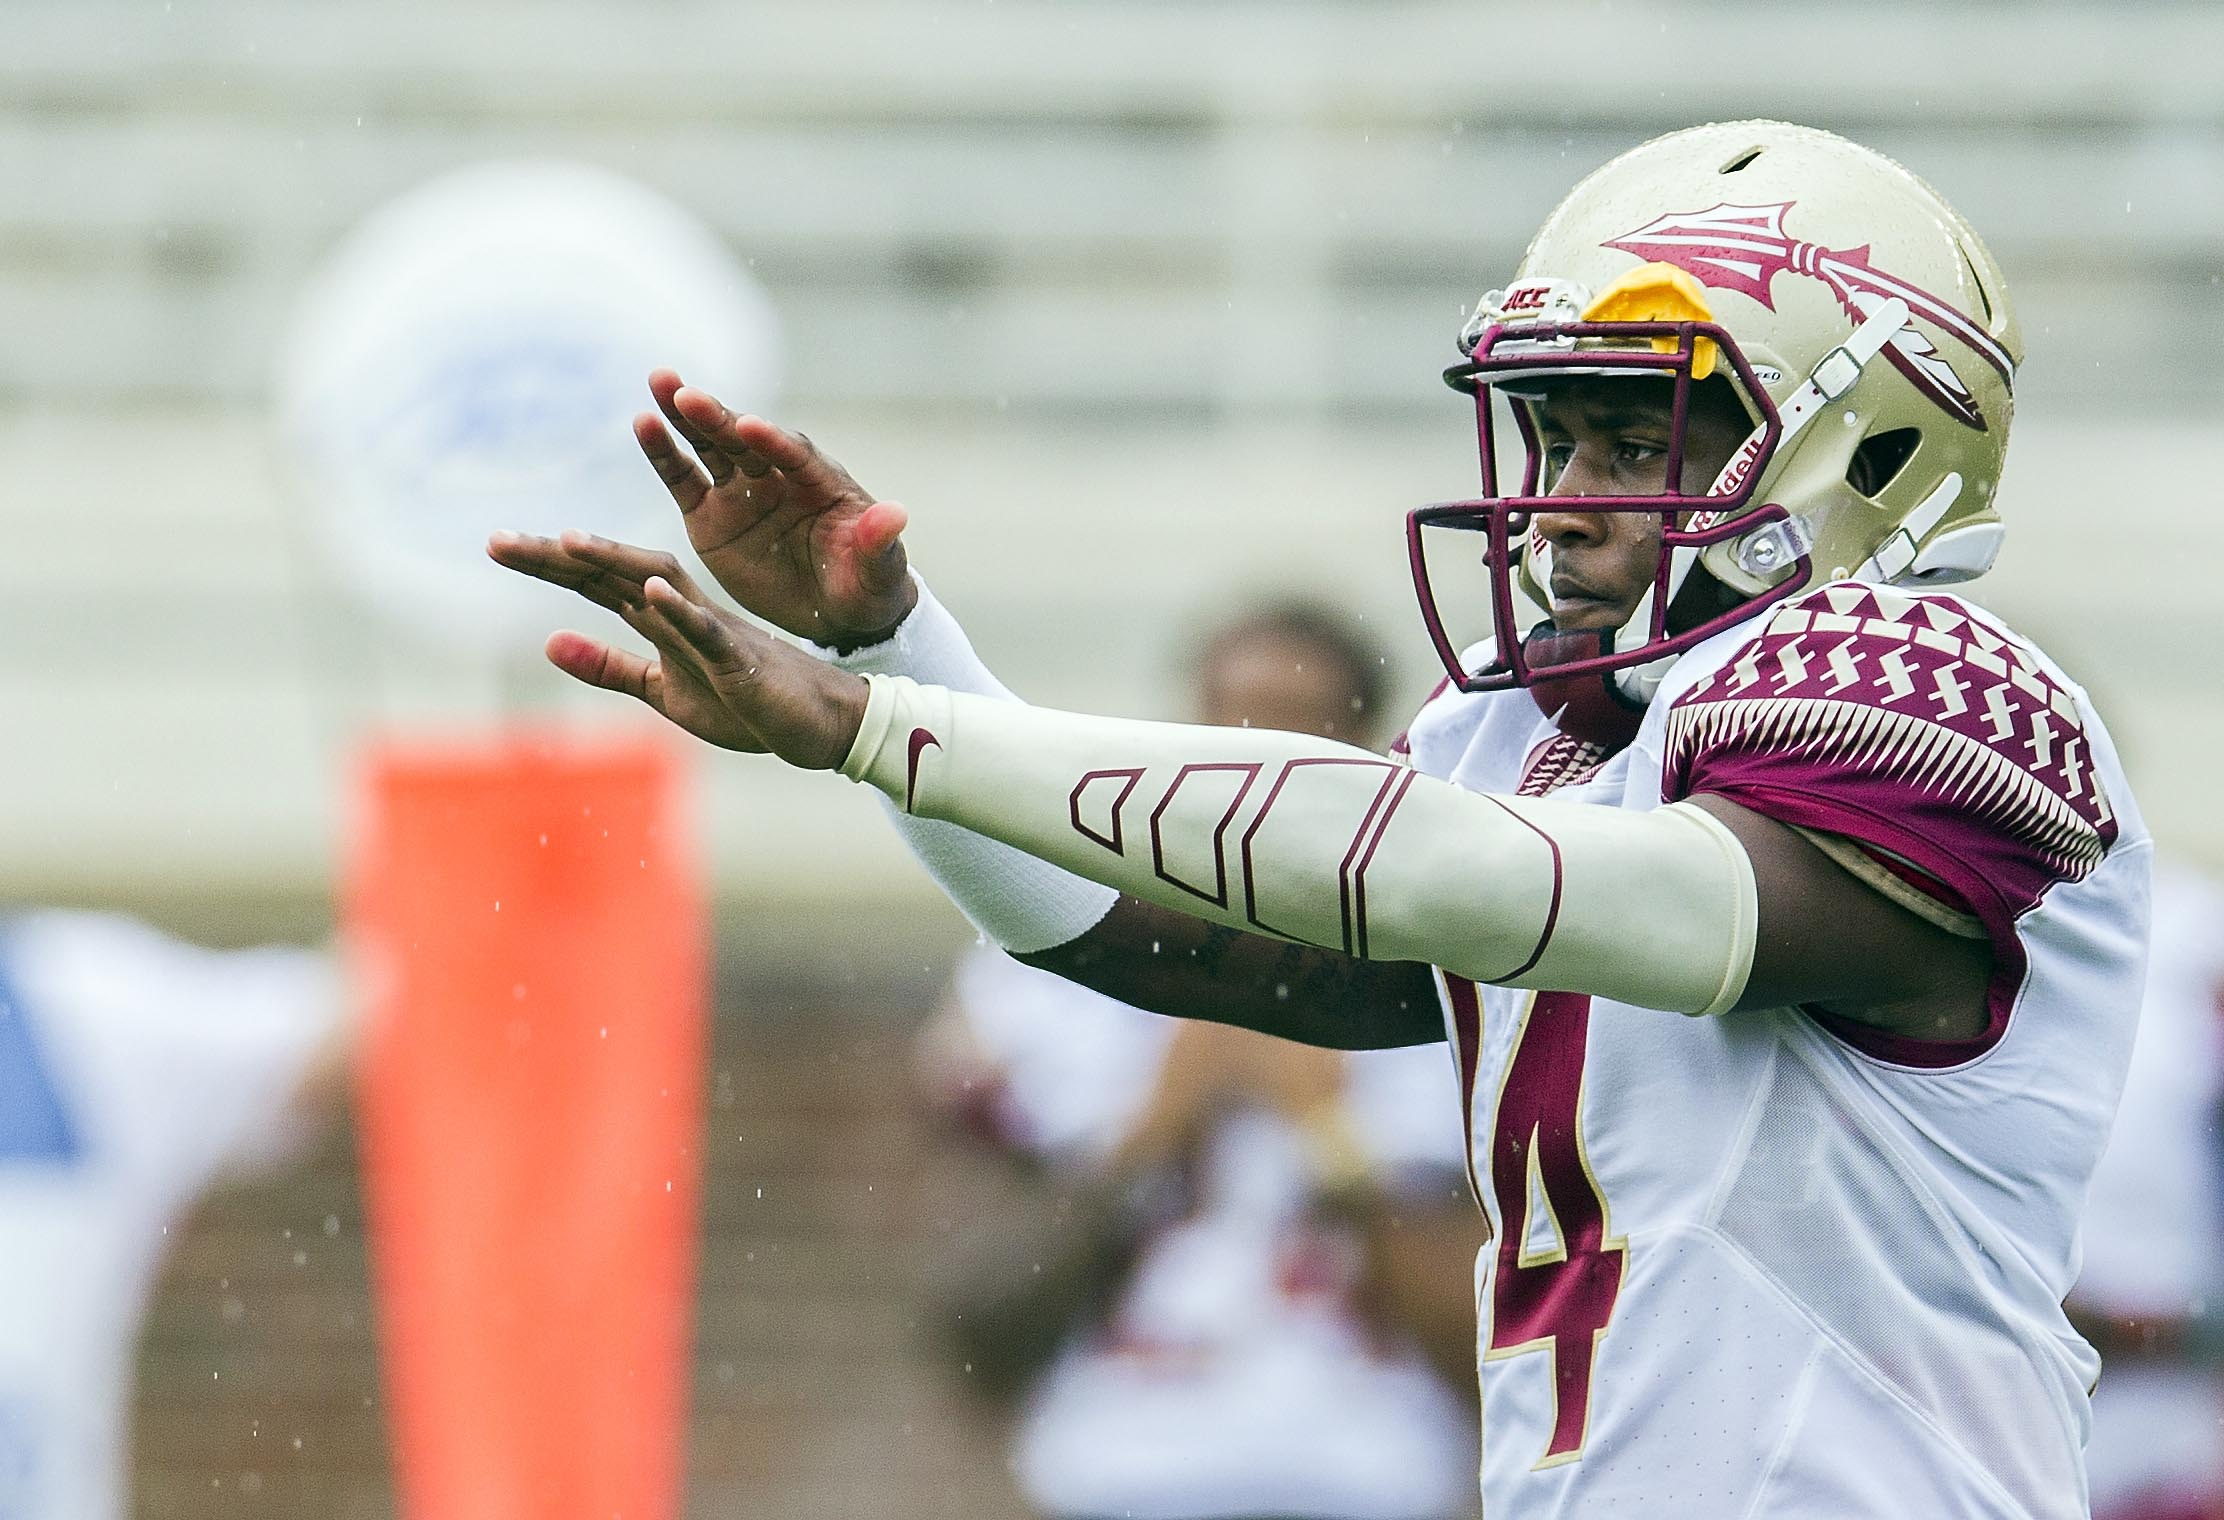 File-This photo taken April 11, 2015, shows Florida State quarterback De'Andre Johnson calling a play in the first half of Florida State Garnet & Gold spring college football game in Tallahassee, Fla.   Florida State has dismissed Johnson from the team on